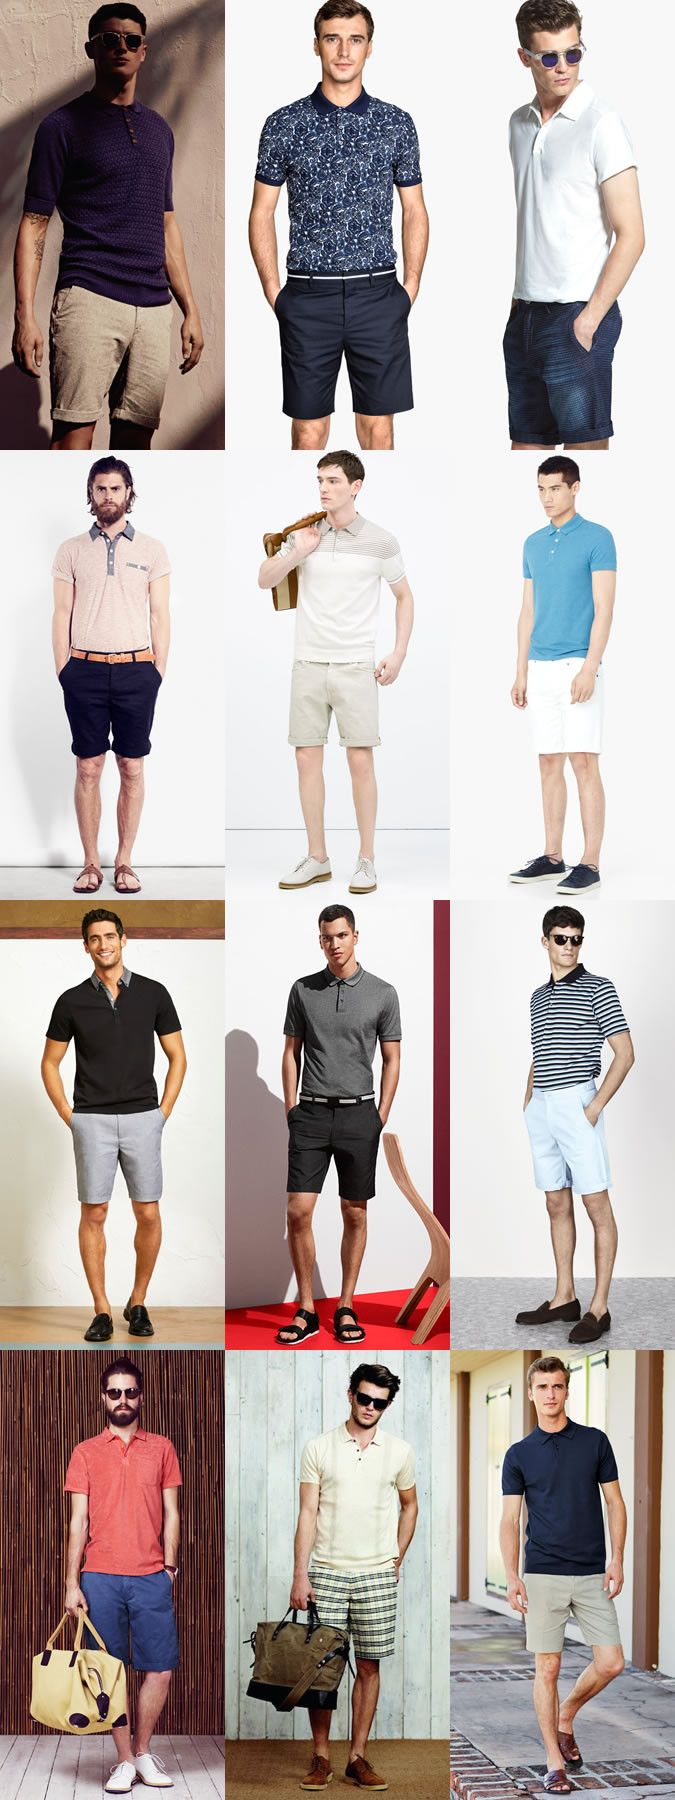 how to wear polo shirts for men, shorts & polo shirt combination